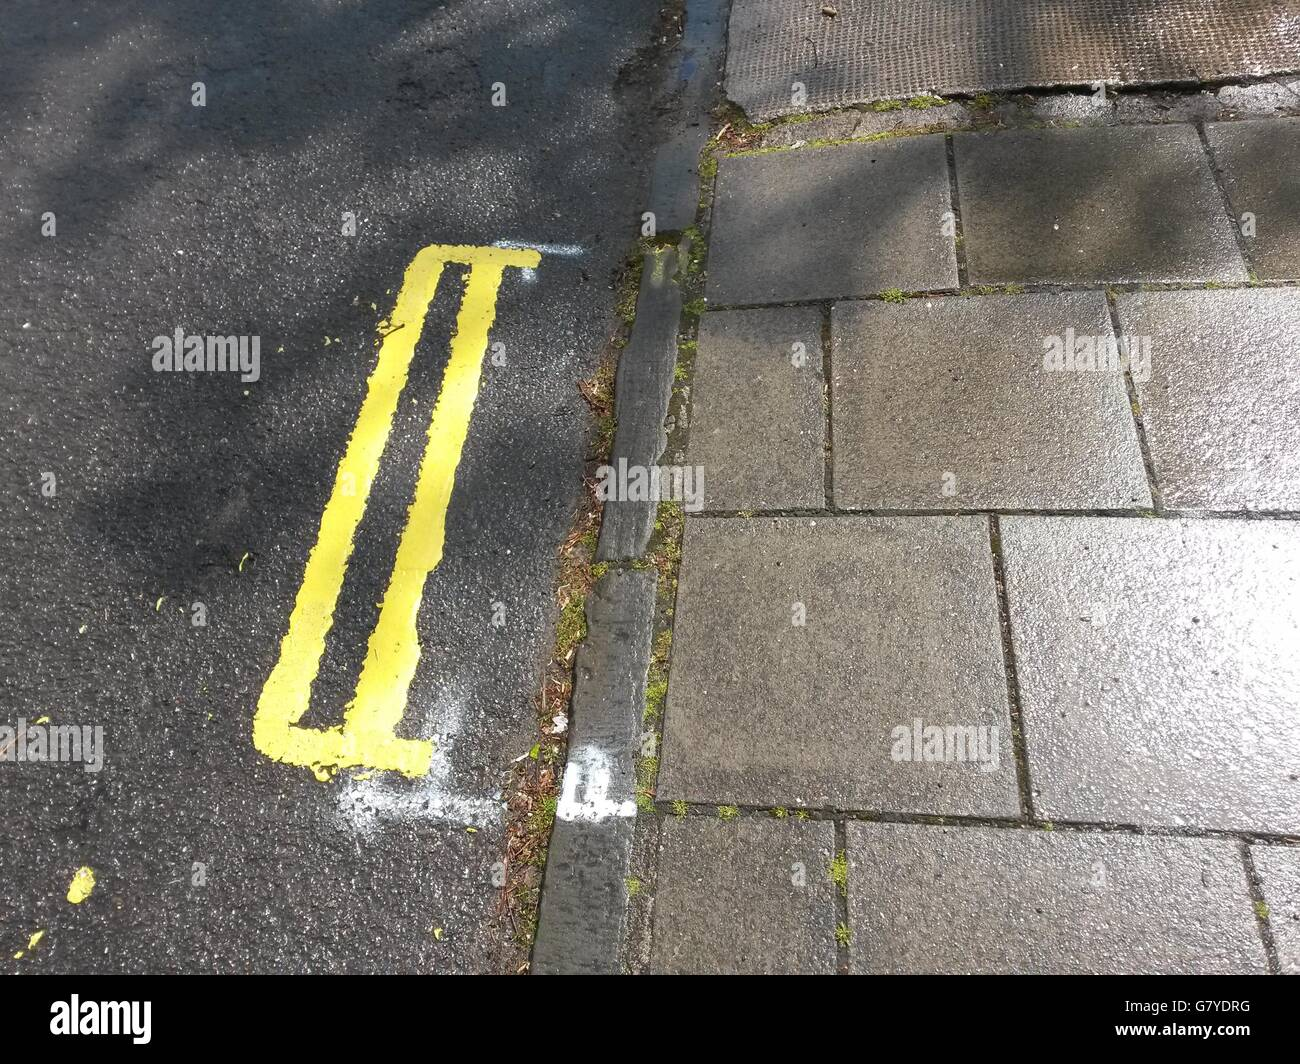 Double yellow lines that measure less than a metre - Stock Image